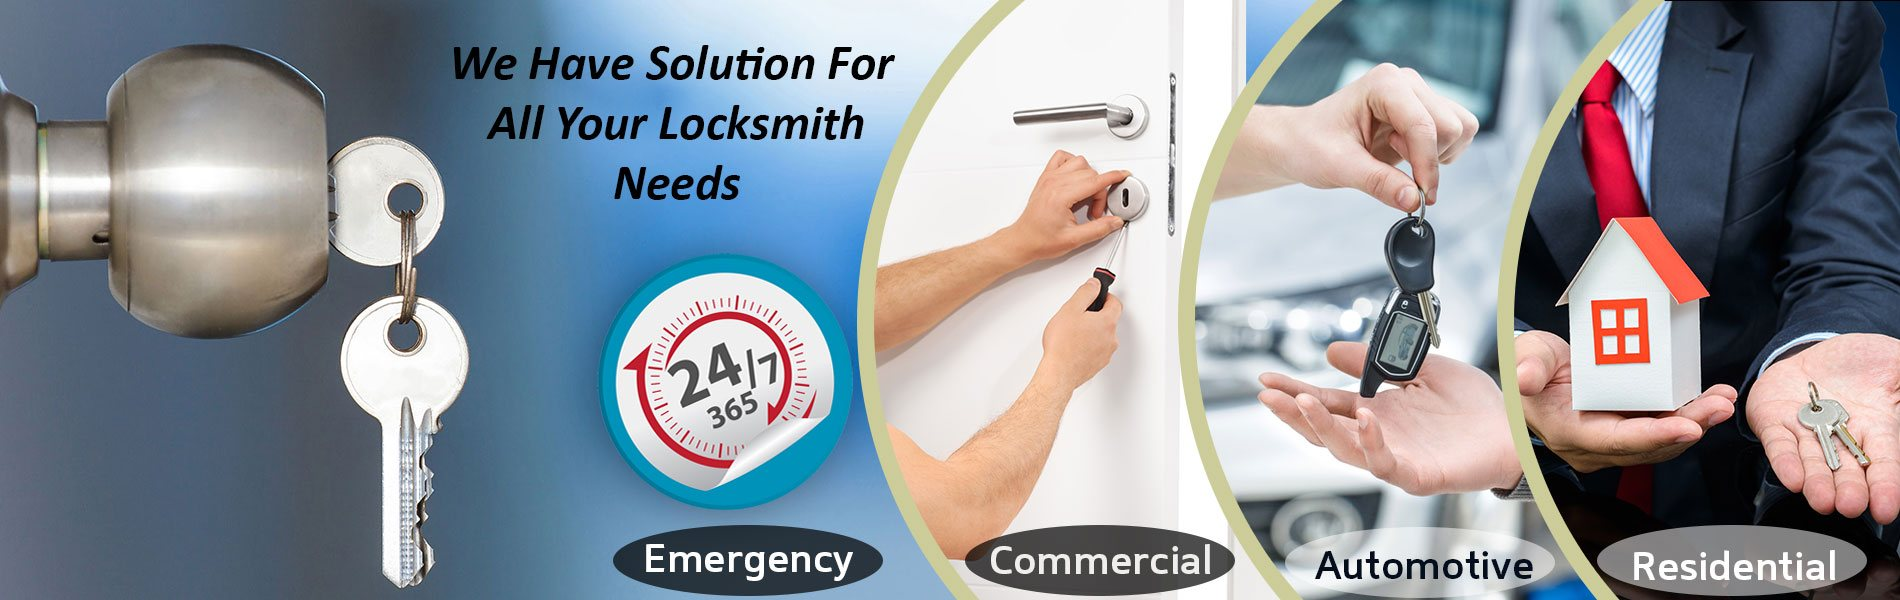 Neighborhood Locksmith Store Kennedale, TX 817-357-4967